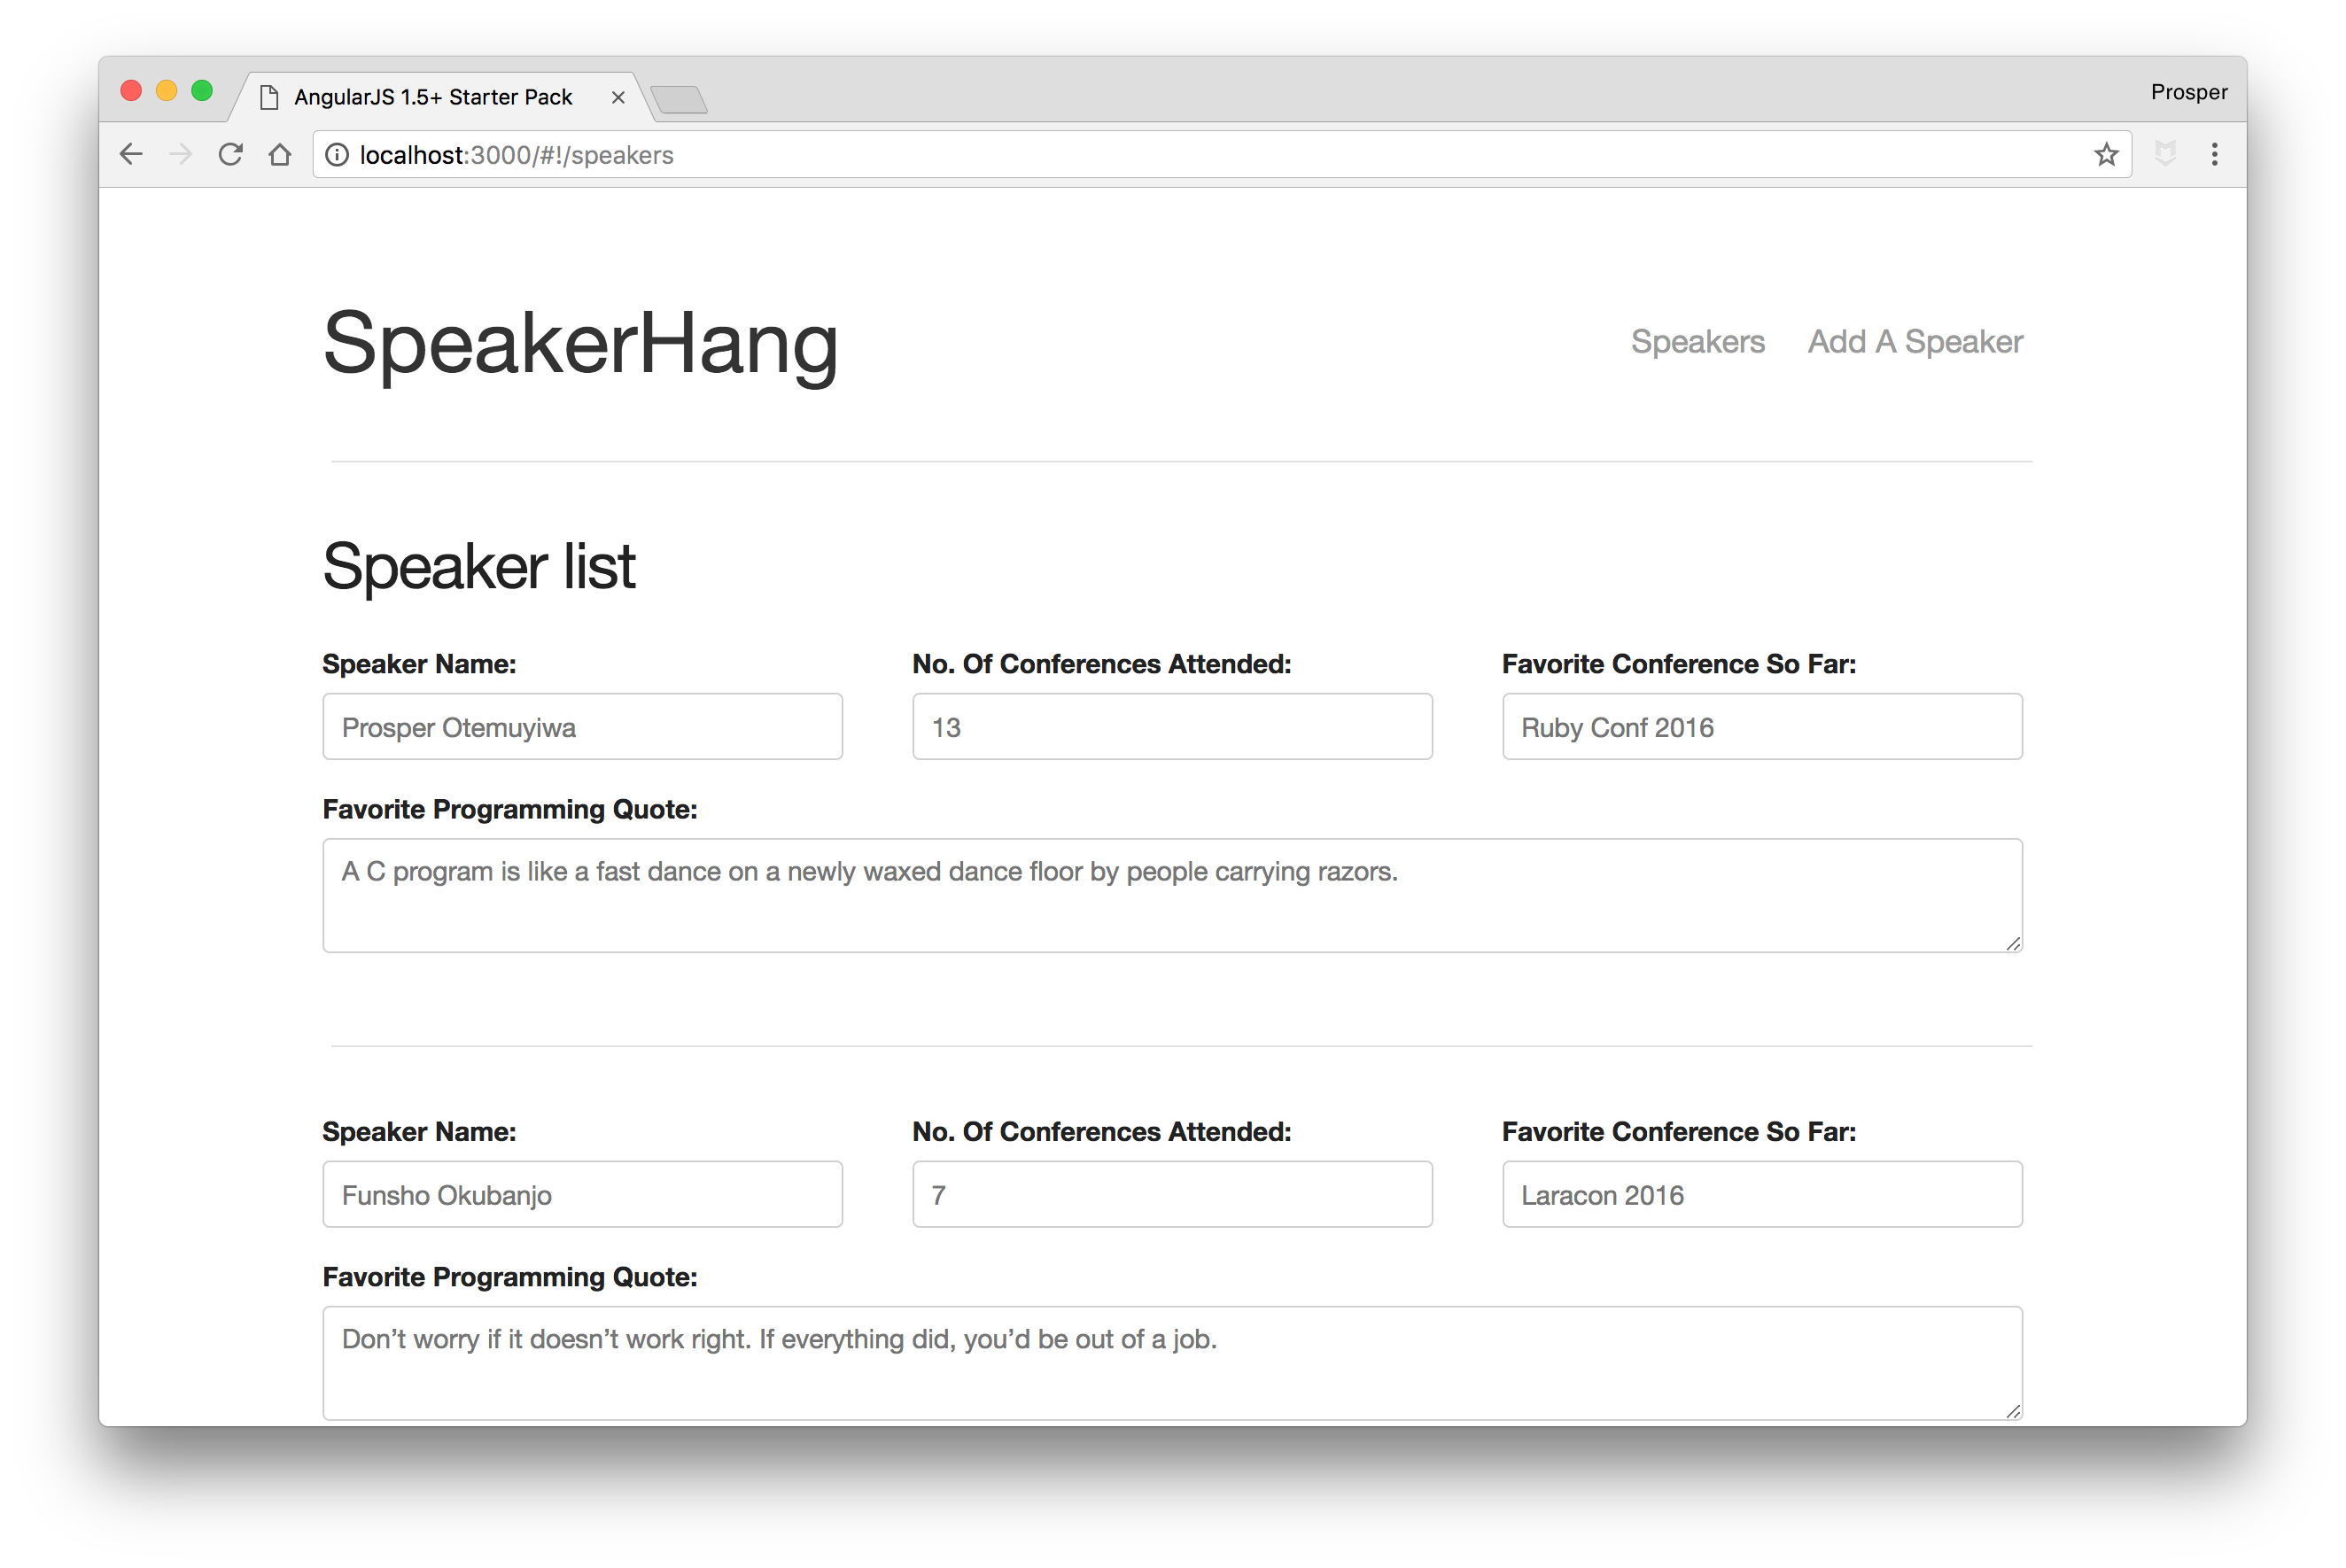 SpeakerHang - List of speakers